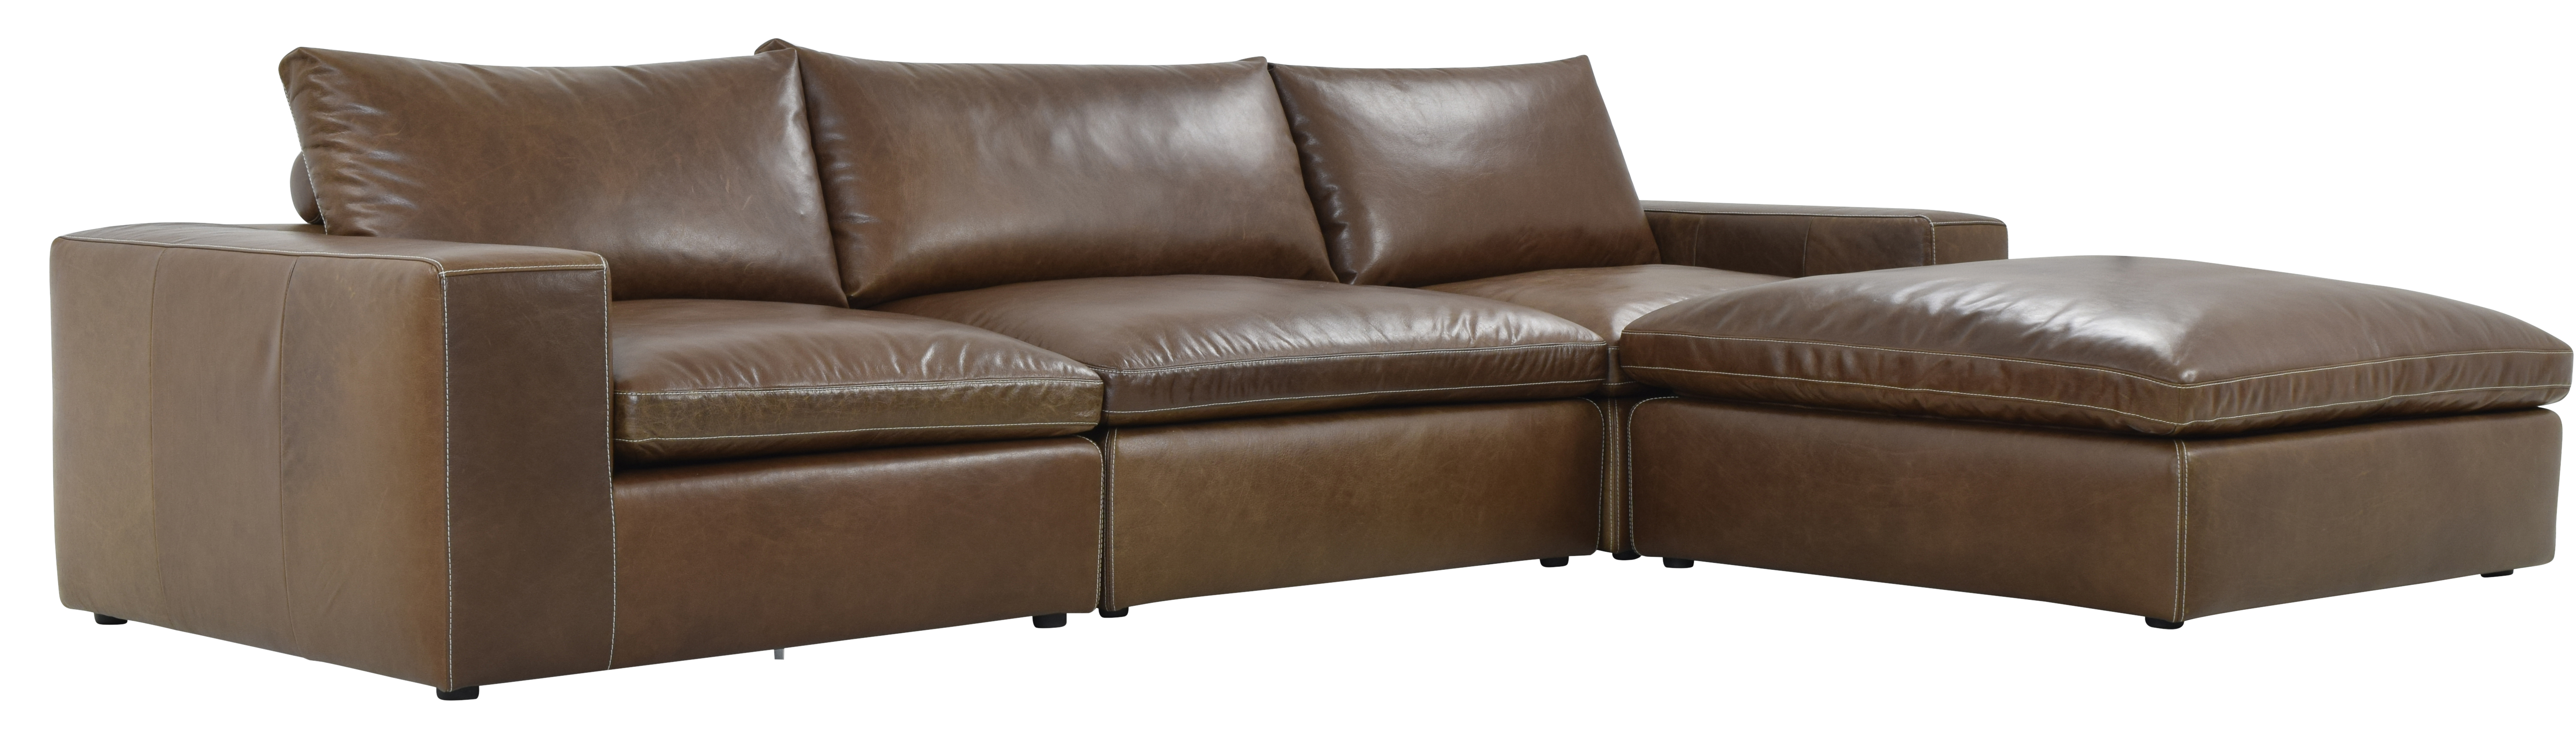 Classic Home Derby sectional